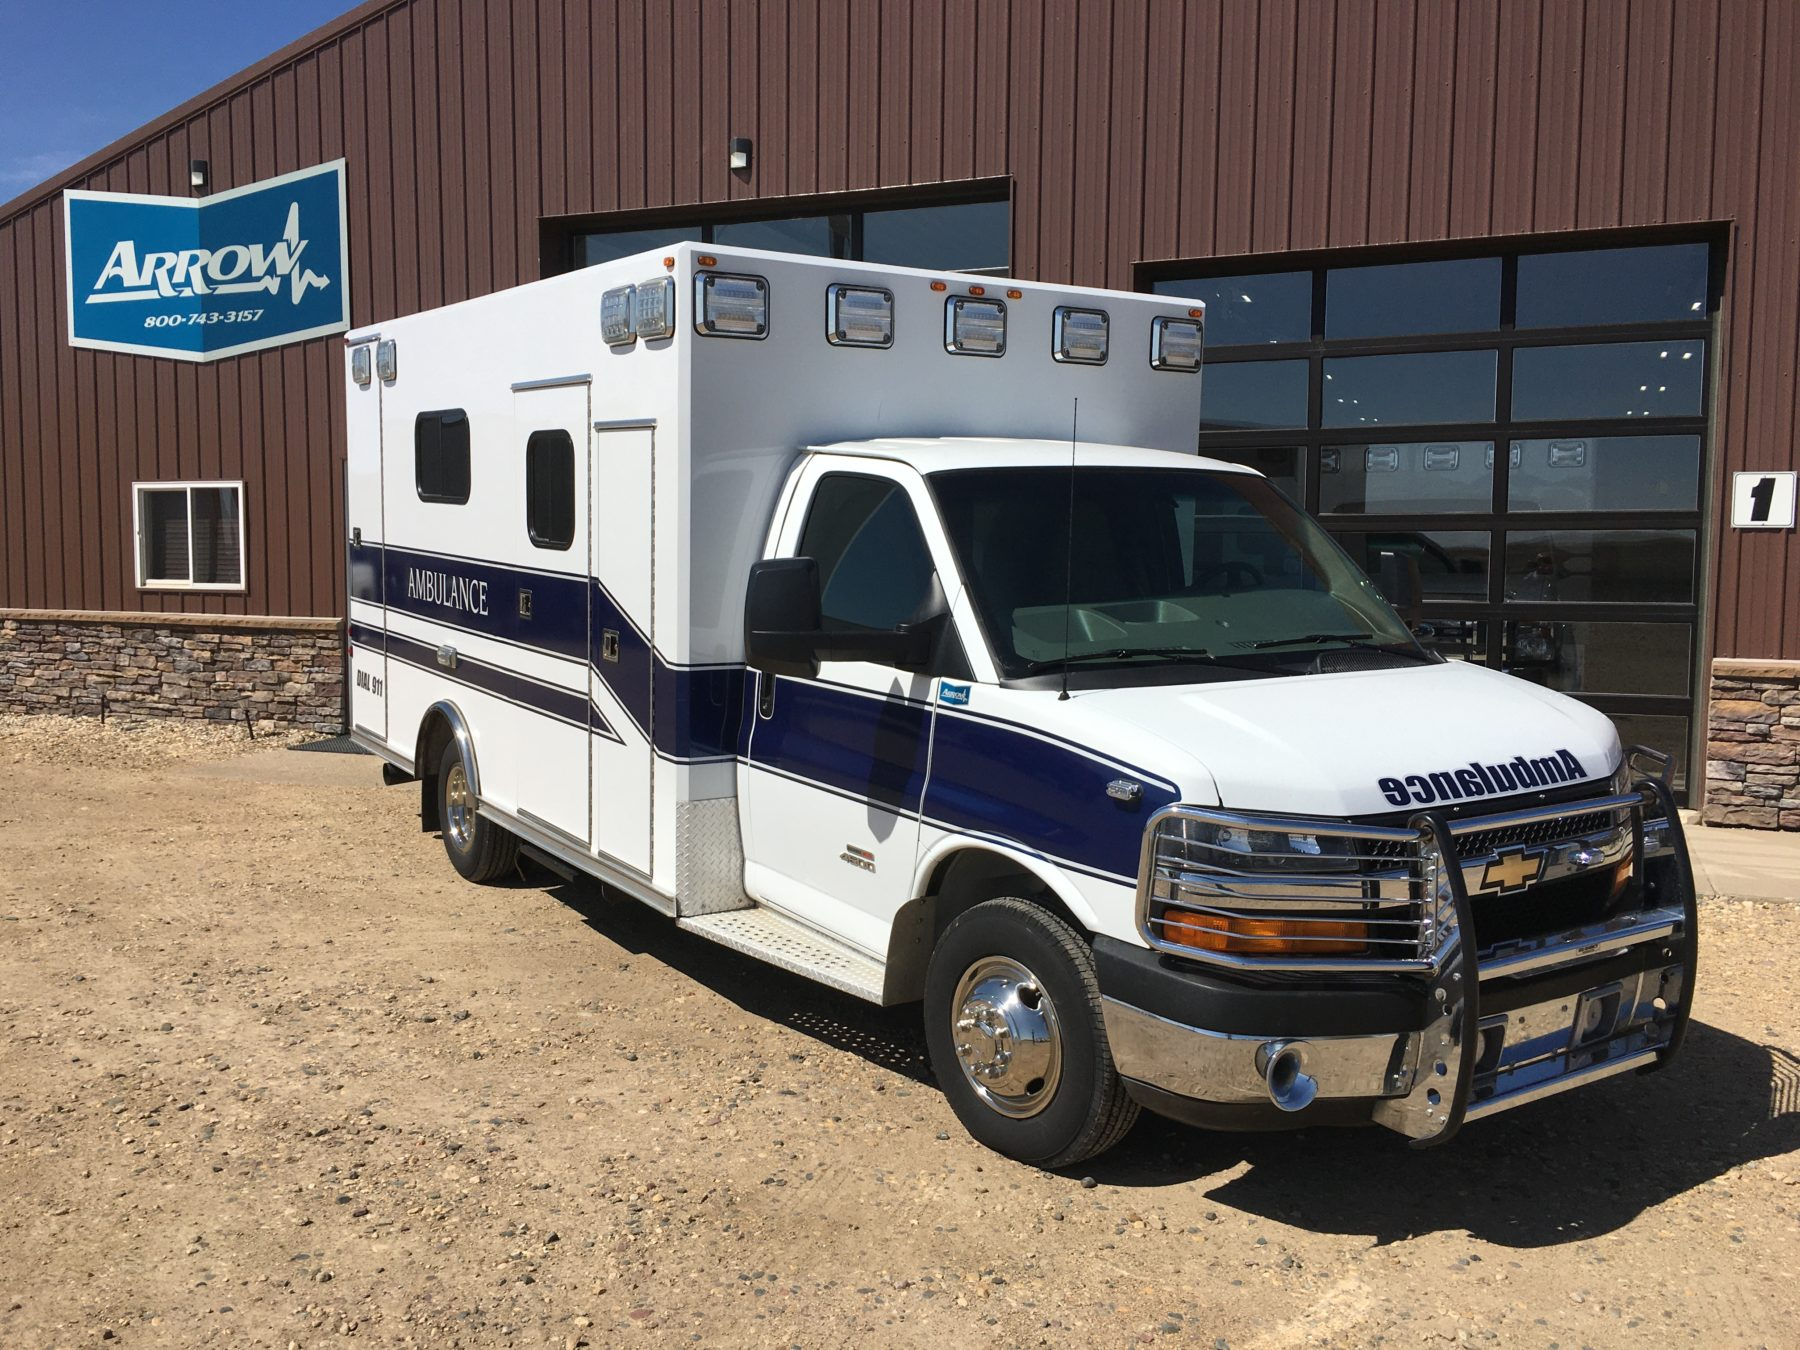 2014 Chevrolet G4500 Type 3 Ambulance For Sale – Picture 6